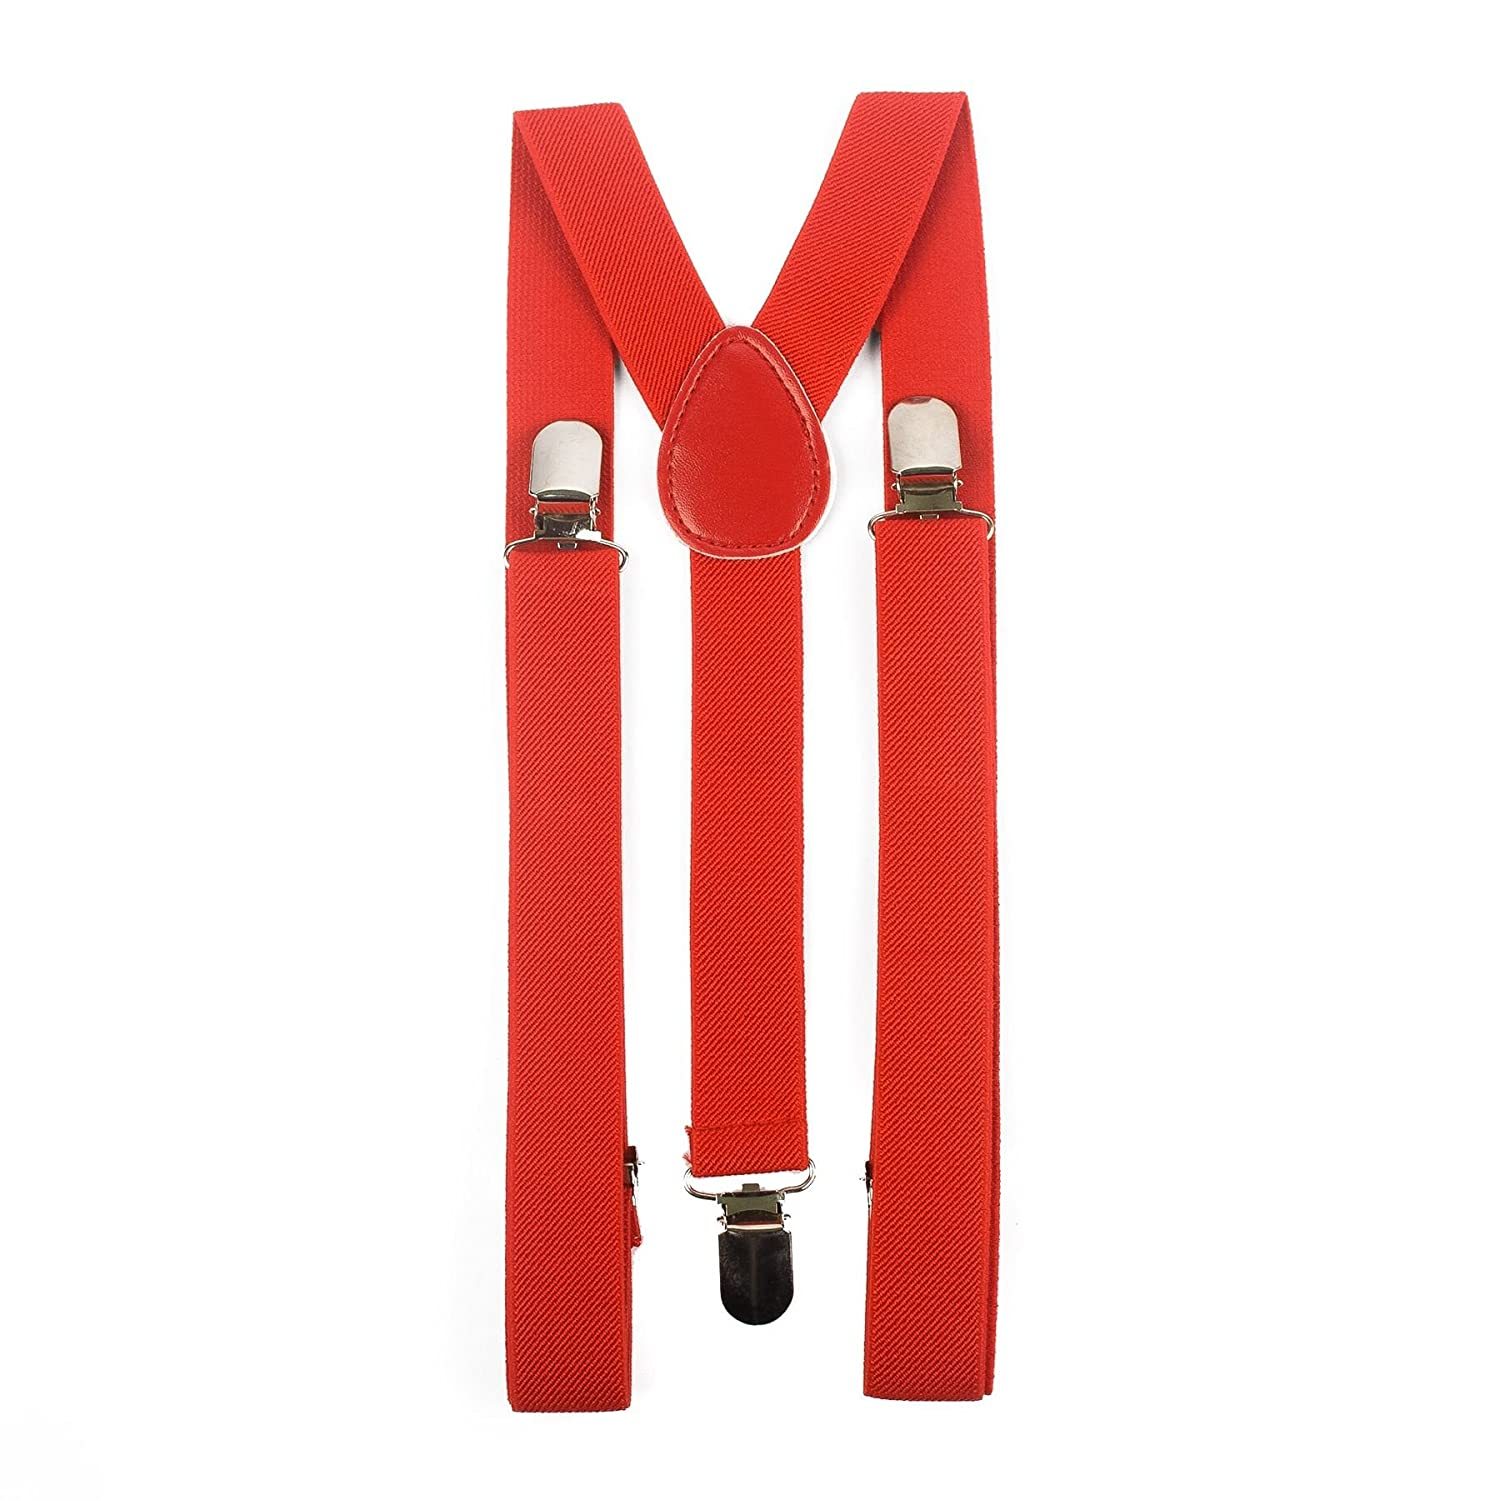 Mens Ladies Unisex Novelty Adjustable Suspenders Braces, Plain Hat To Socks